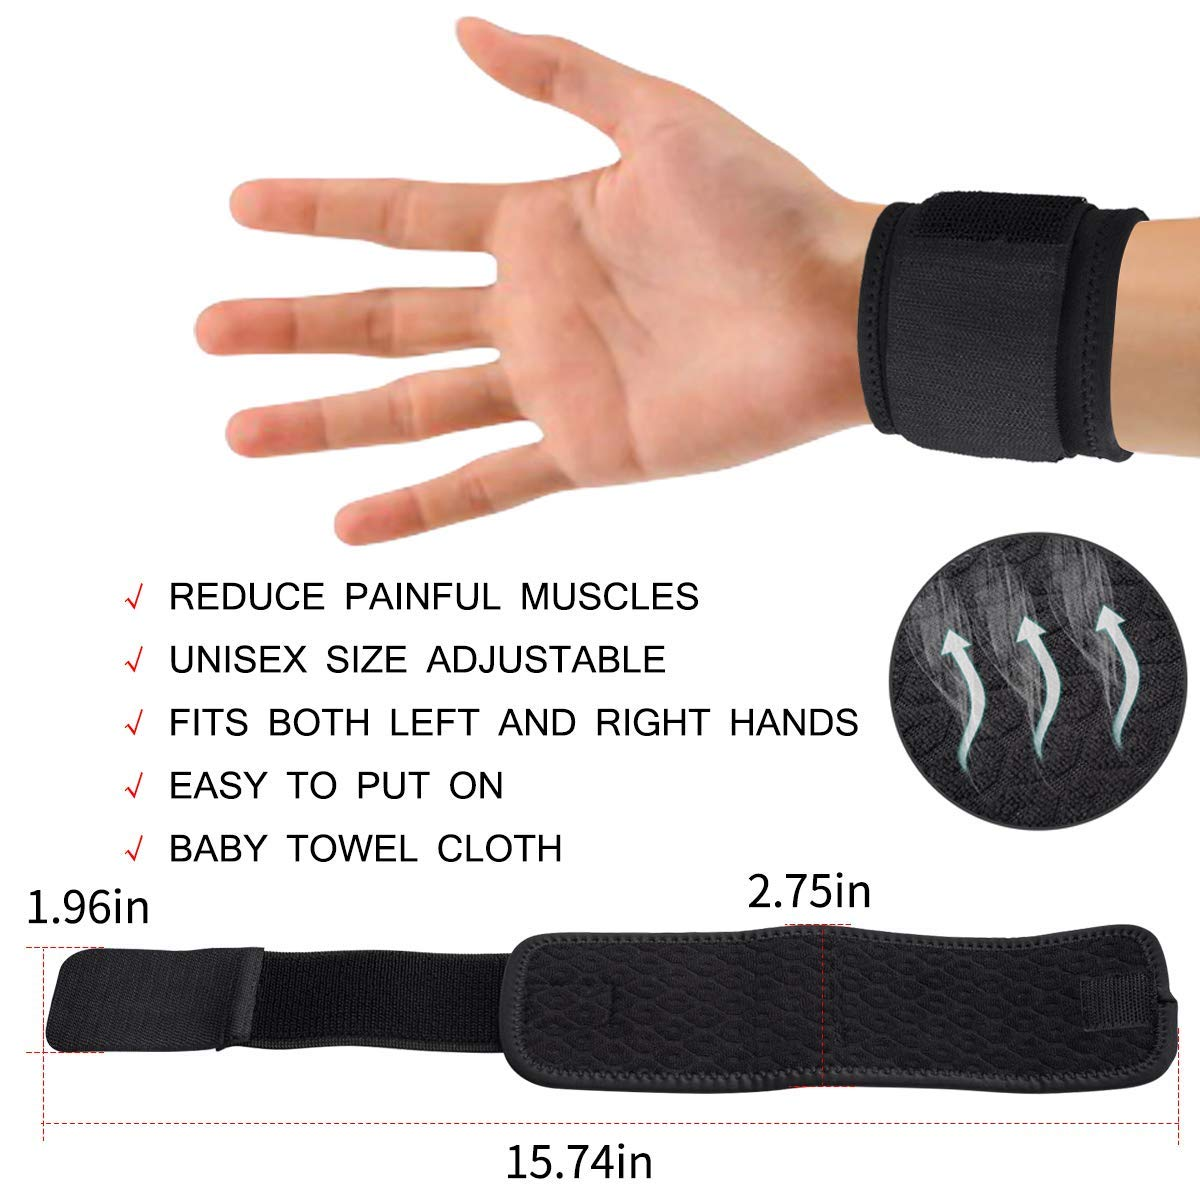 2 PCS Wrist Brace Wrist Compression Strap Sport Wrist Support for Working Out Sport Weightlifting Relief Relief Arthritis, Tendonitis, Sprains - Ergonomic Wrist Guard